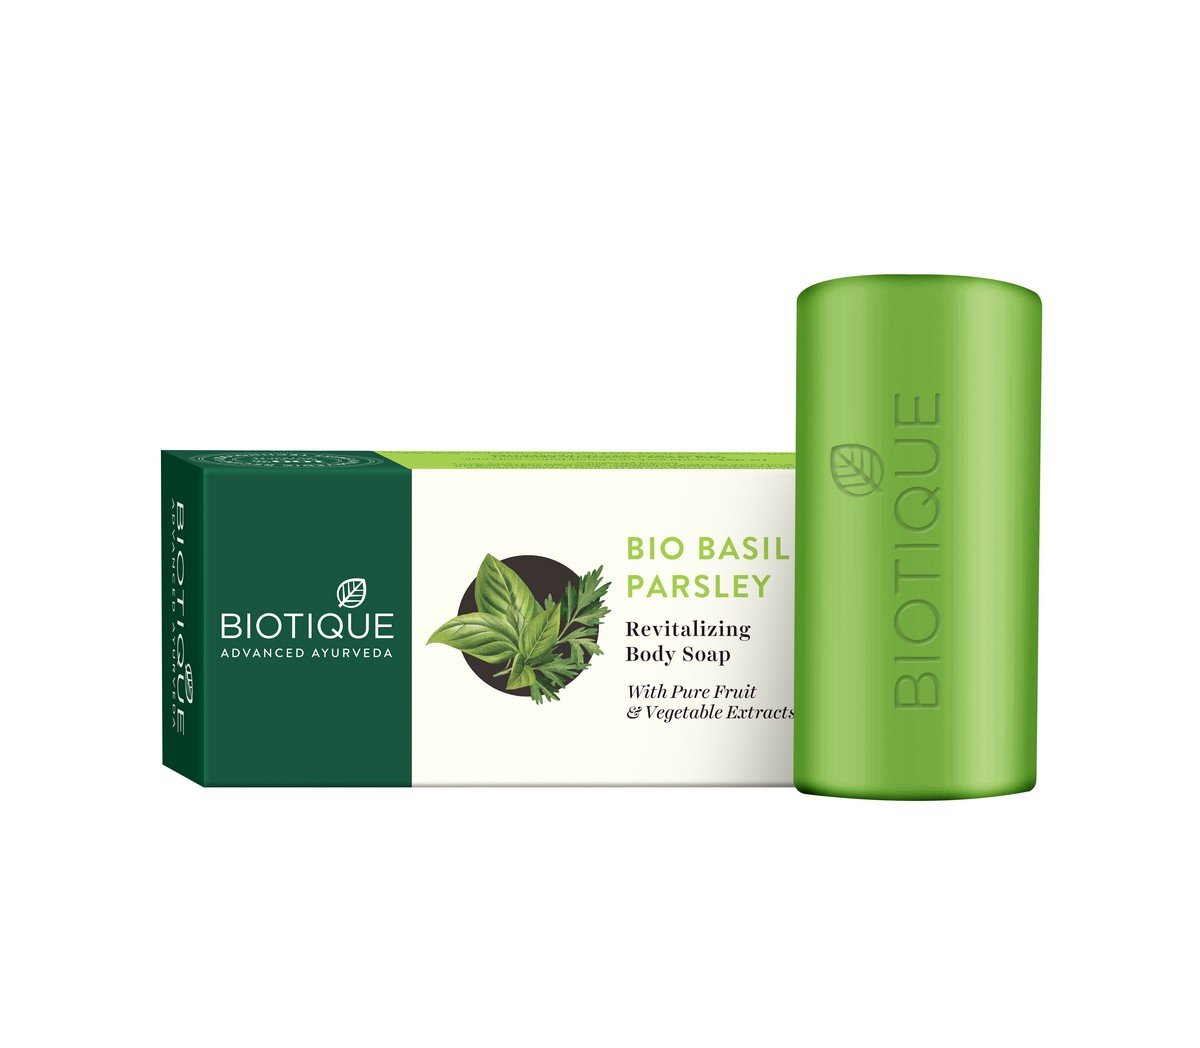 Biotique Bio Basil And Parsley Revitalizing Body Soap-0